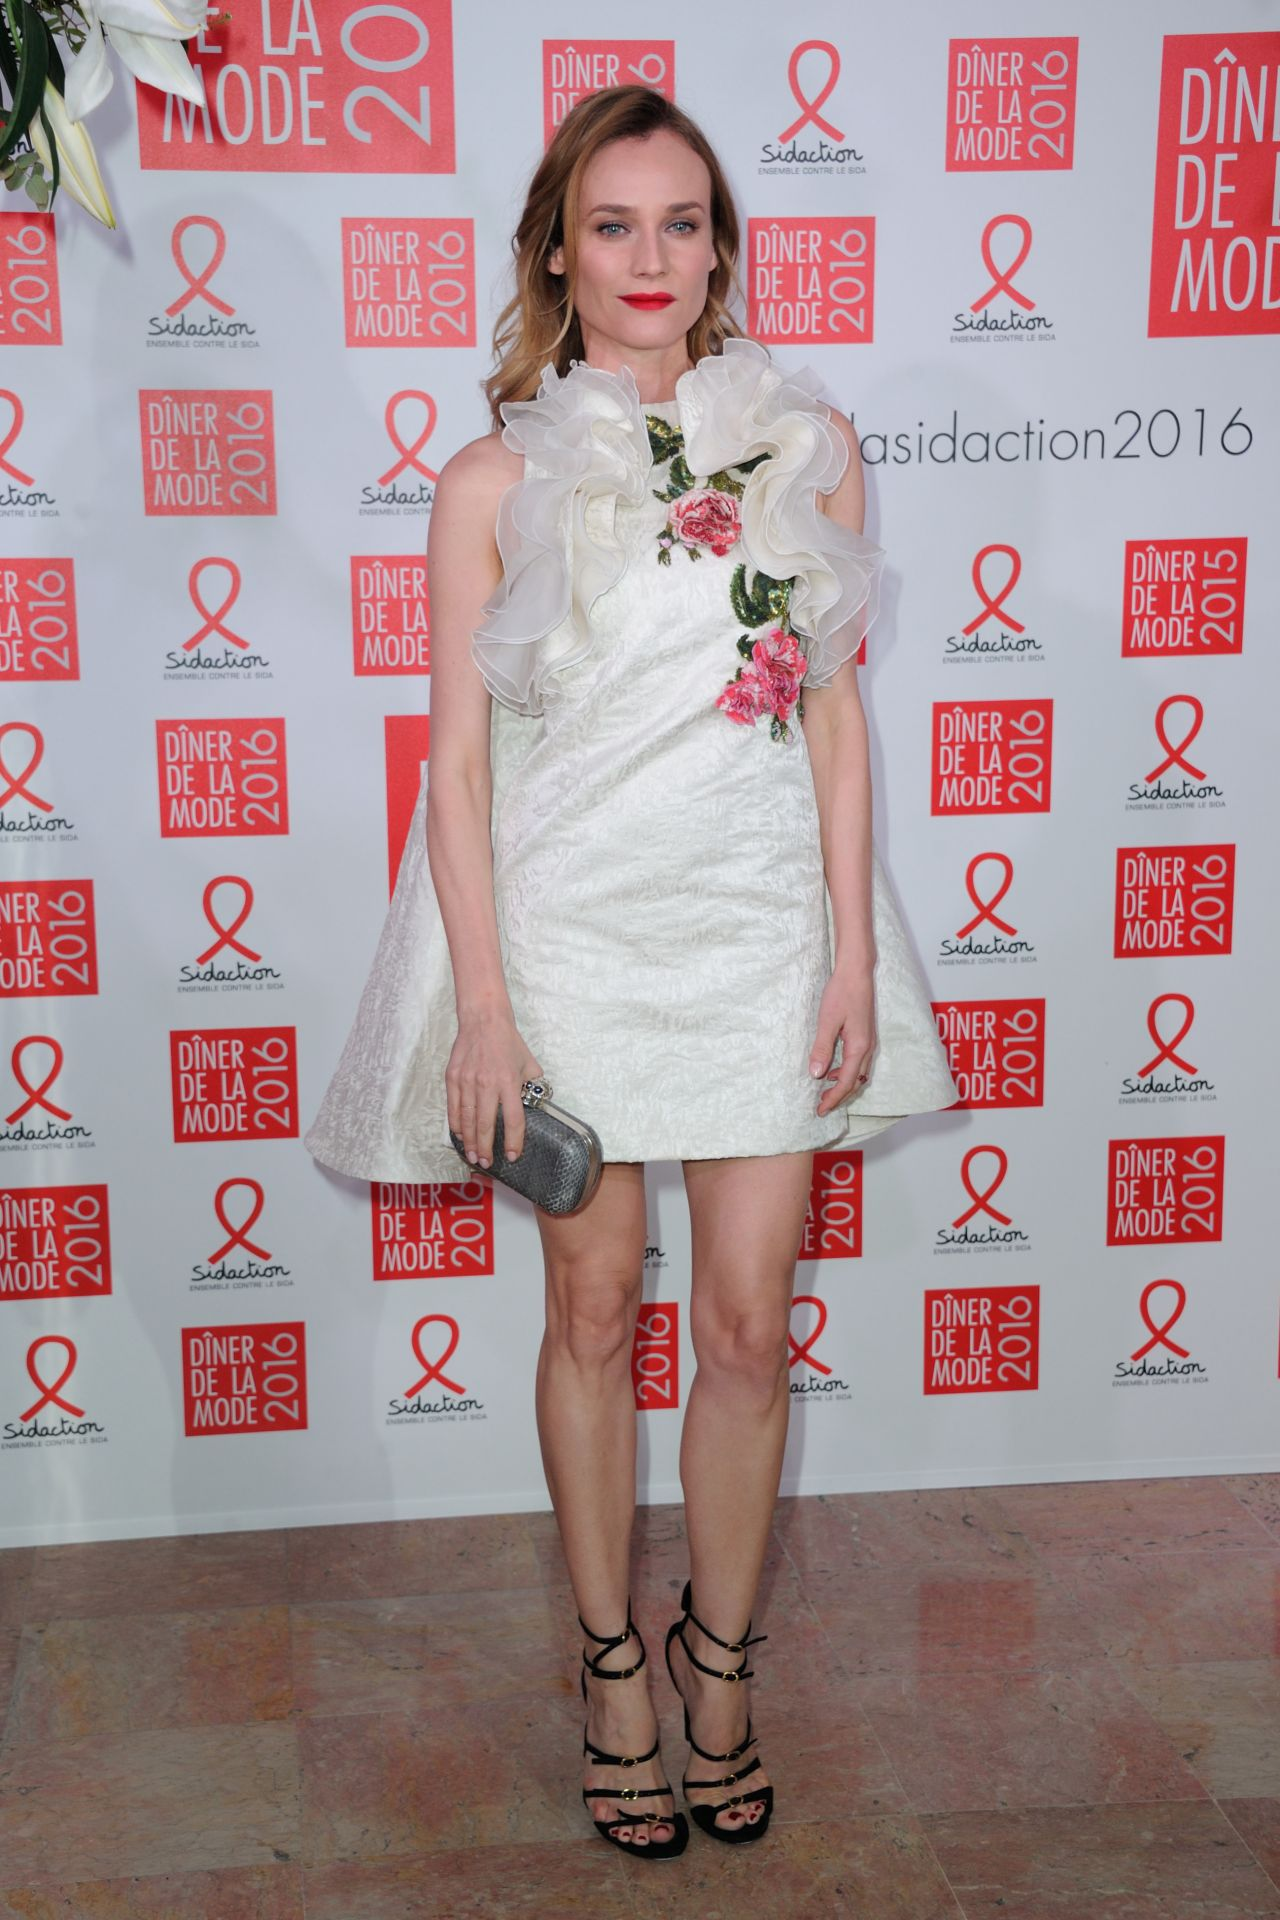 diane-kruger-sidaction-gala-dinner-2016-in-paris-1